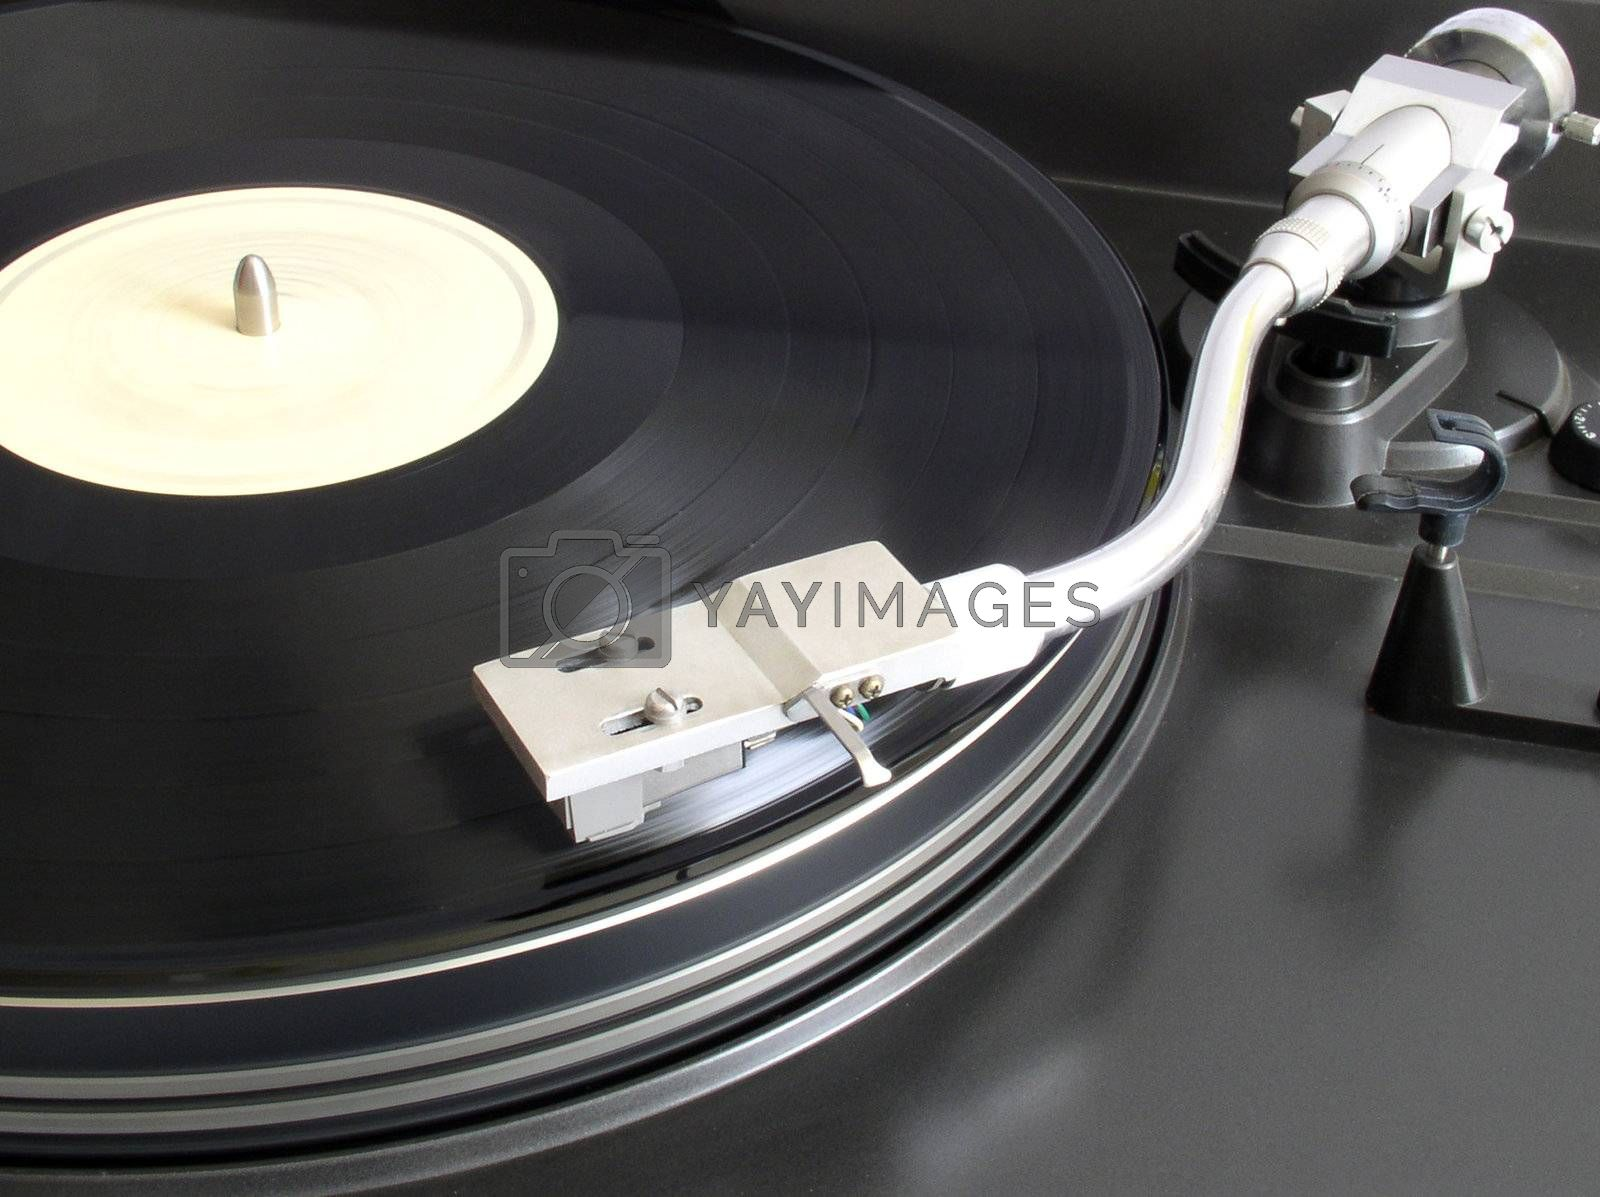 Royalty free image of Turntable by kapp